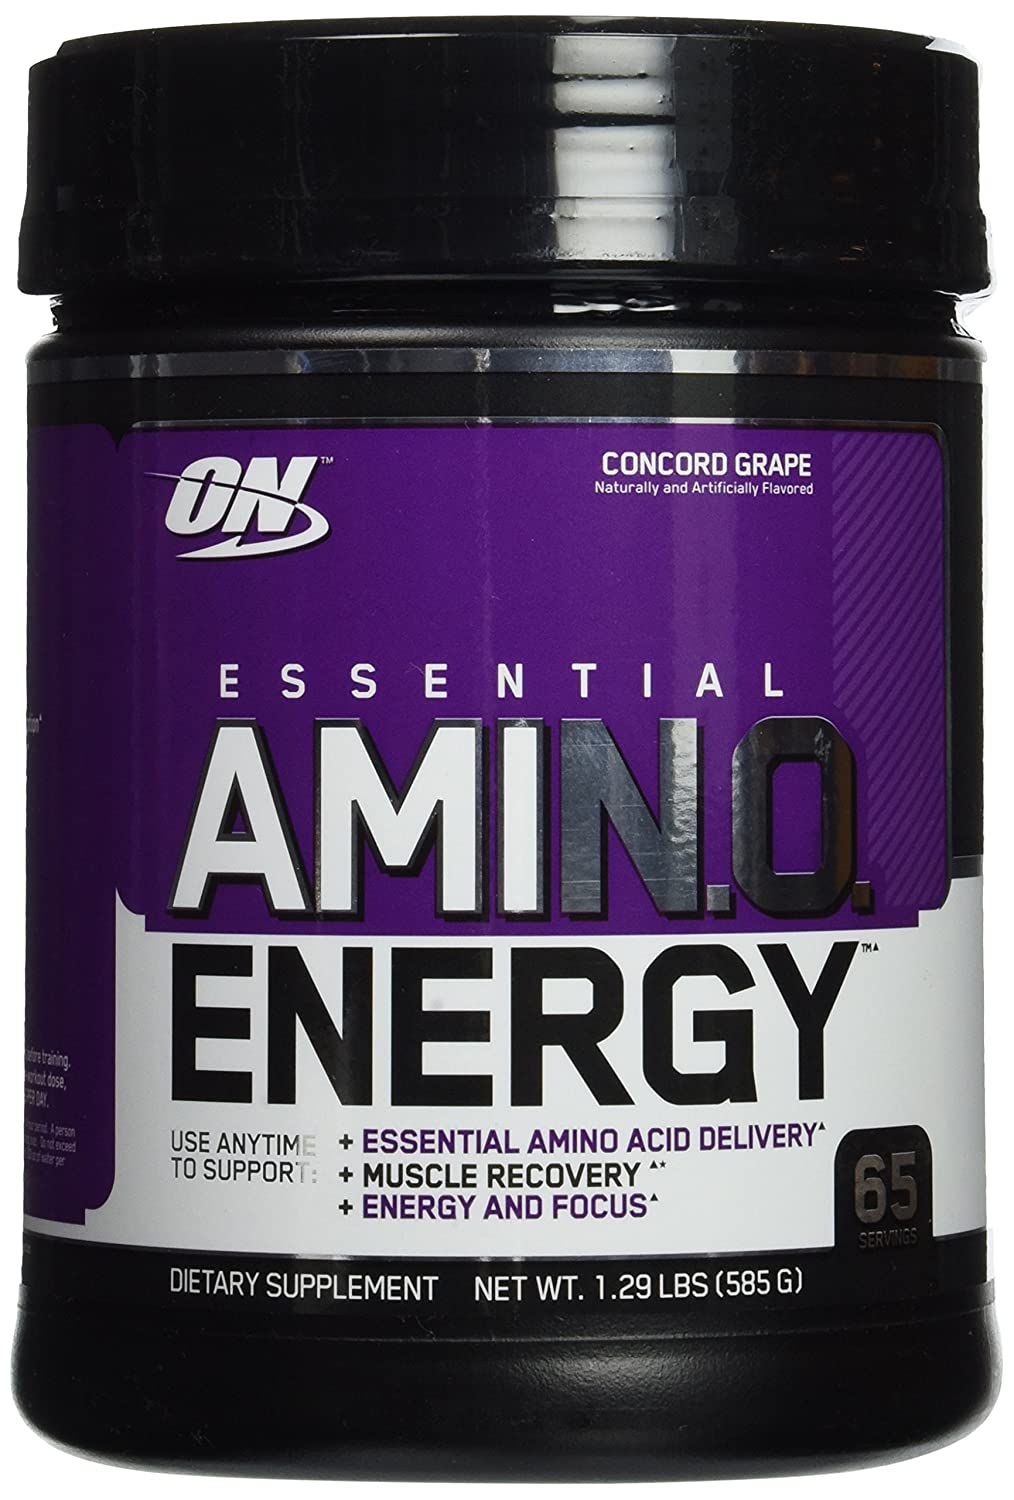 Nane OPTIMUM NUTRITION Amino Energy, Concord Grape, Preworkout and Essential Amino Acids with Green Tea and Green Coffee Extract, 65 Servings